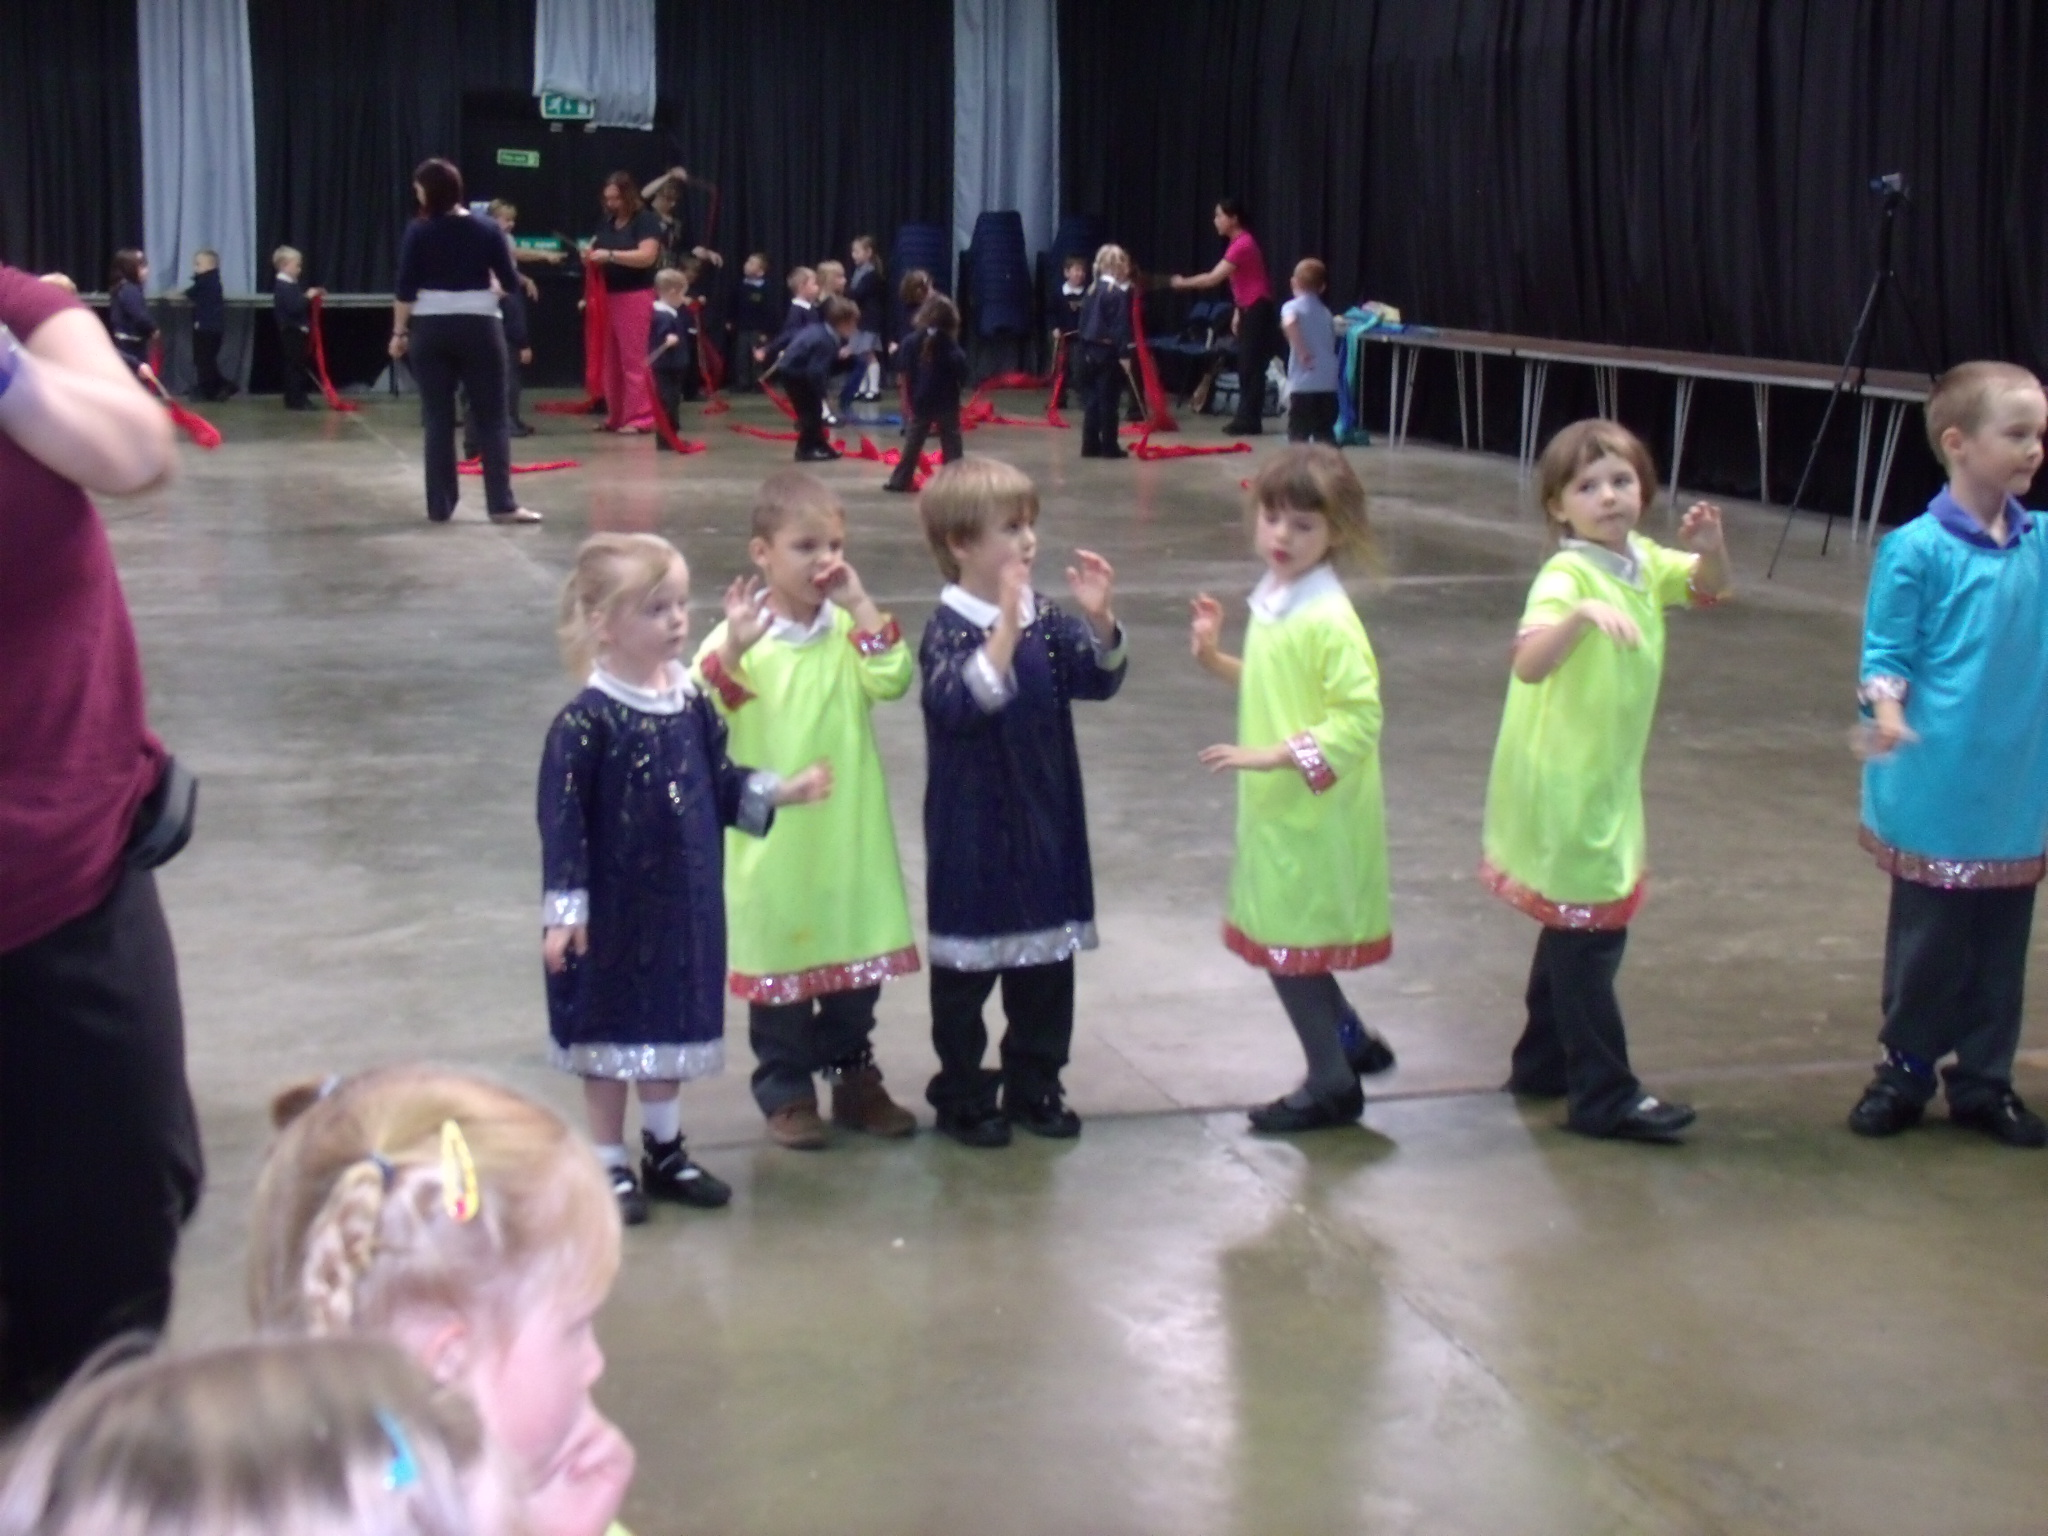 School children dressed in bright Indian clothing learning Indian dance